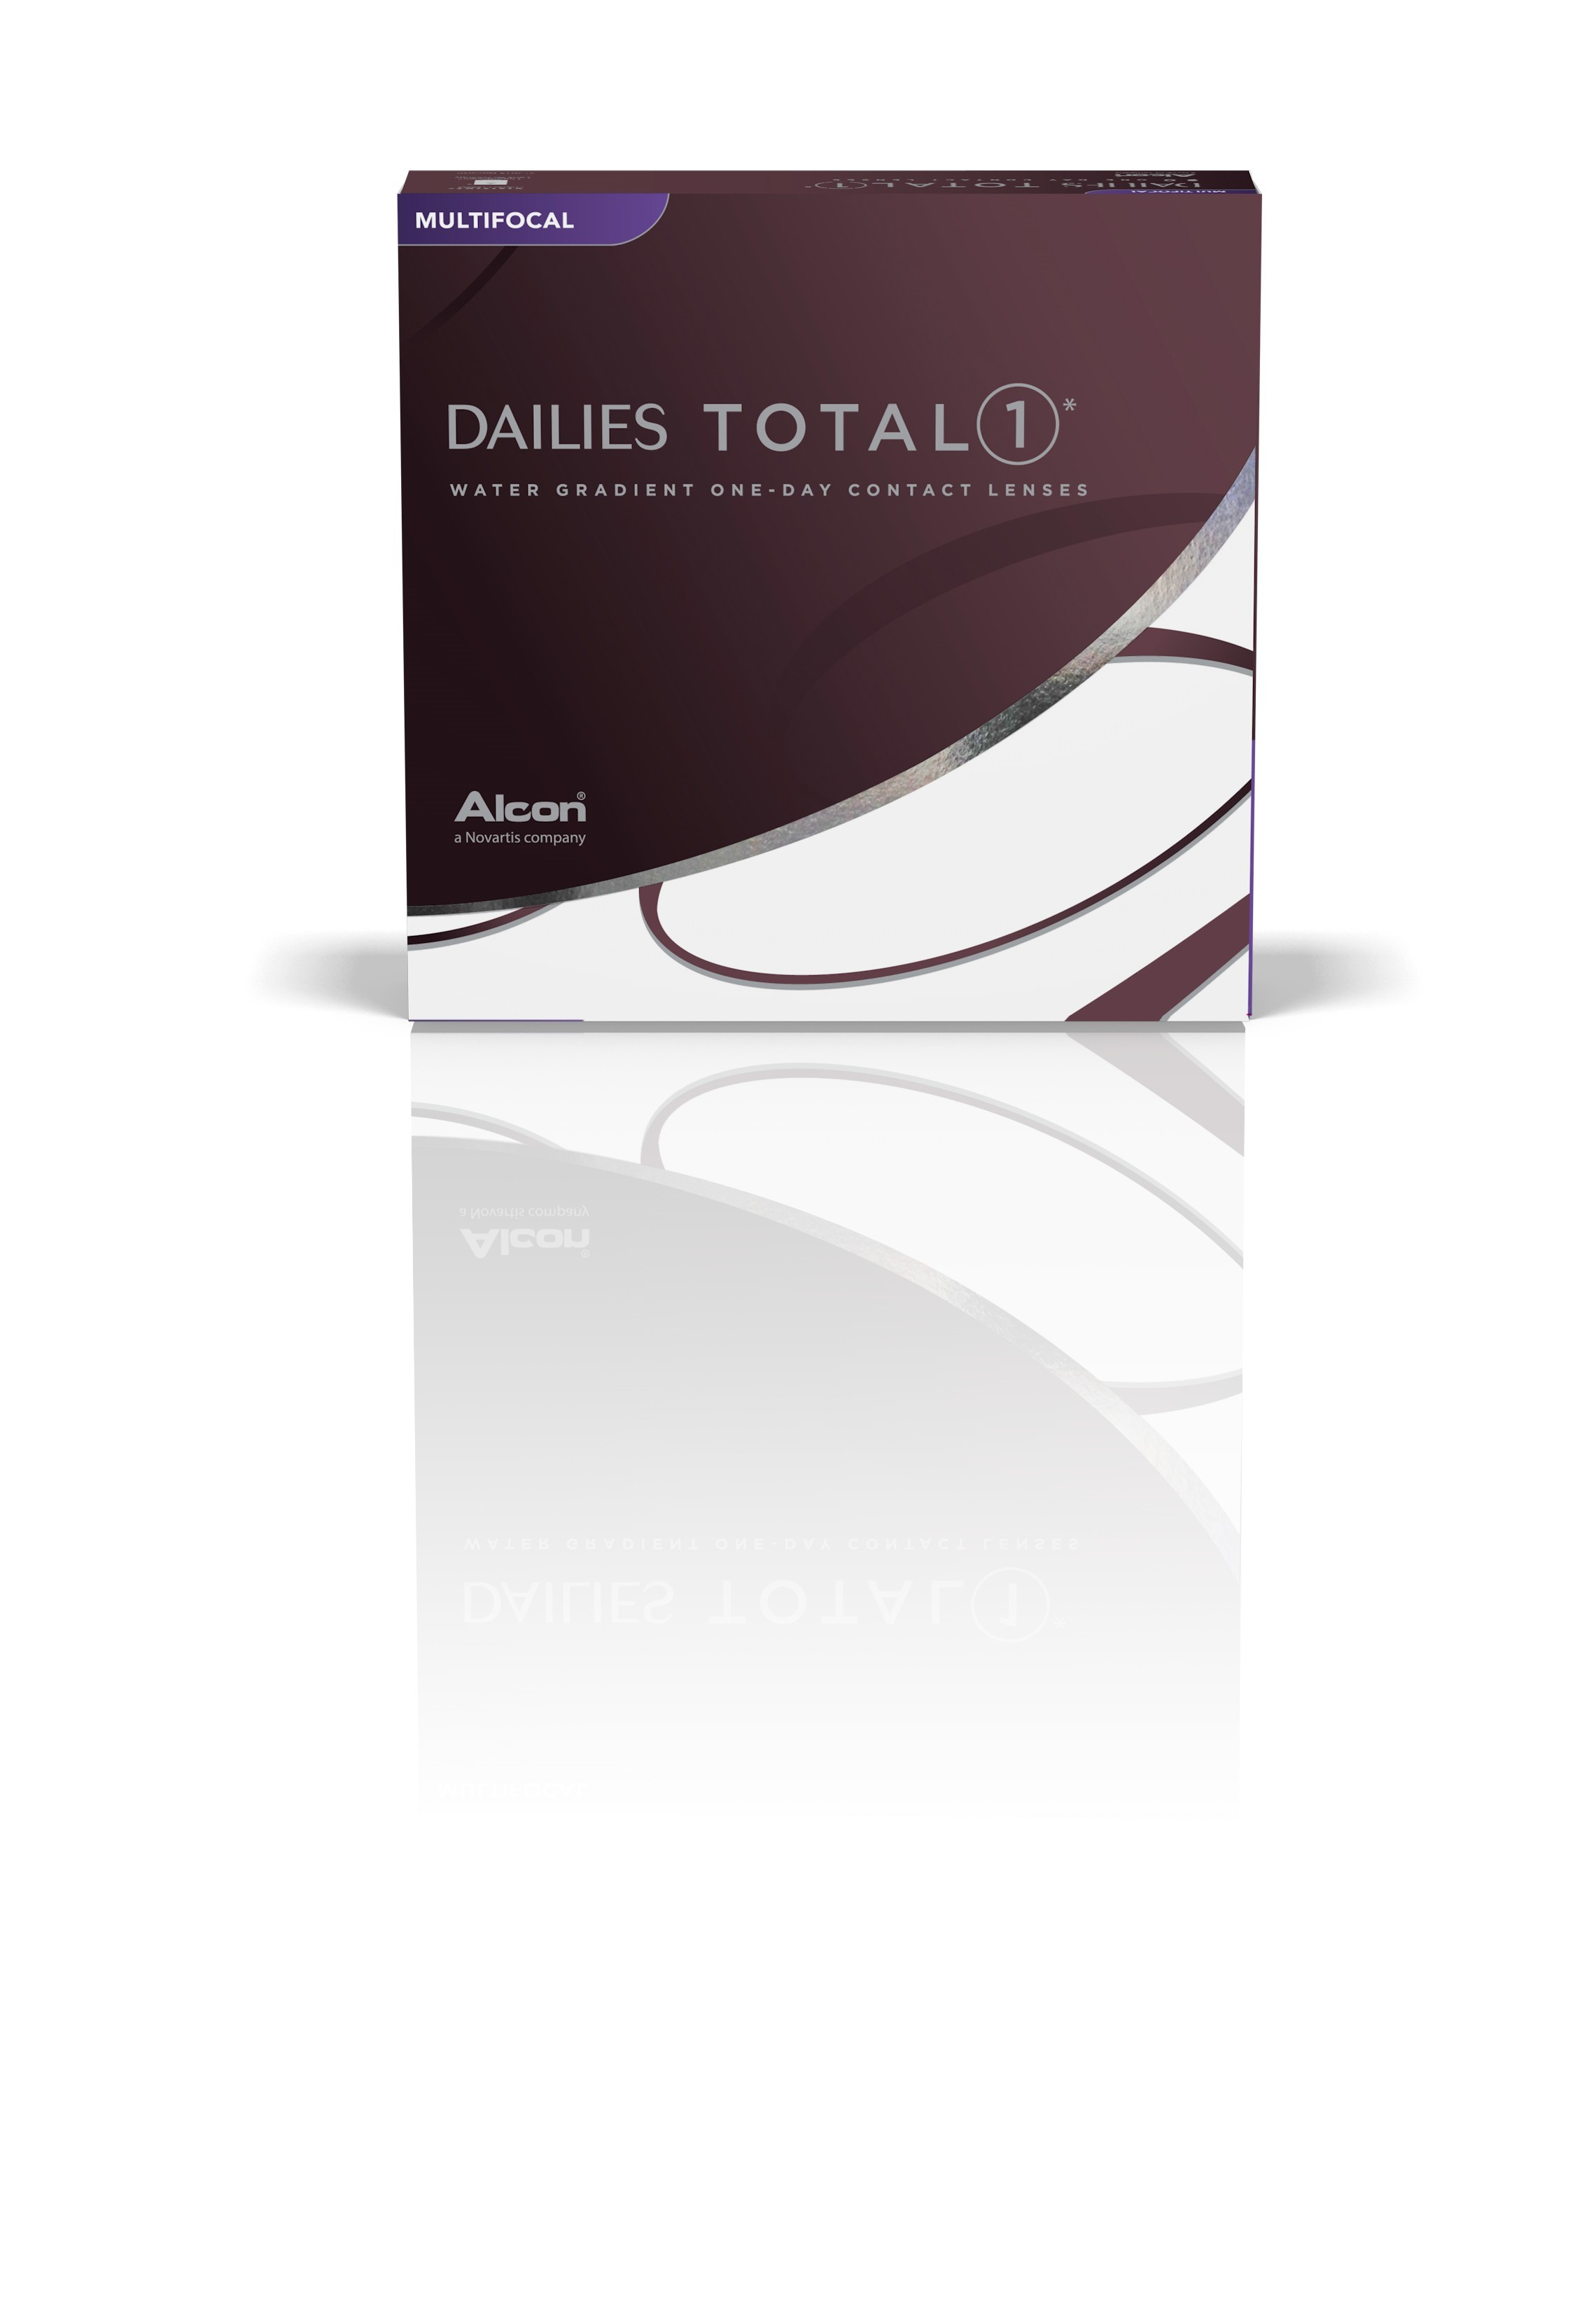 dailies-total1-multifocal-90